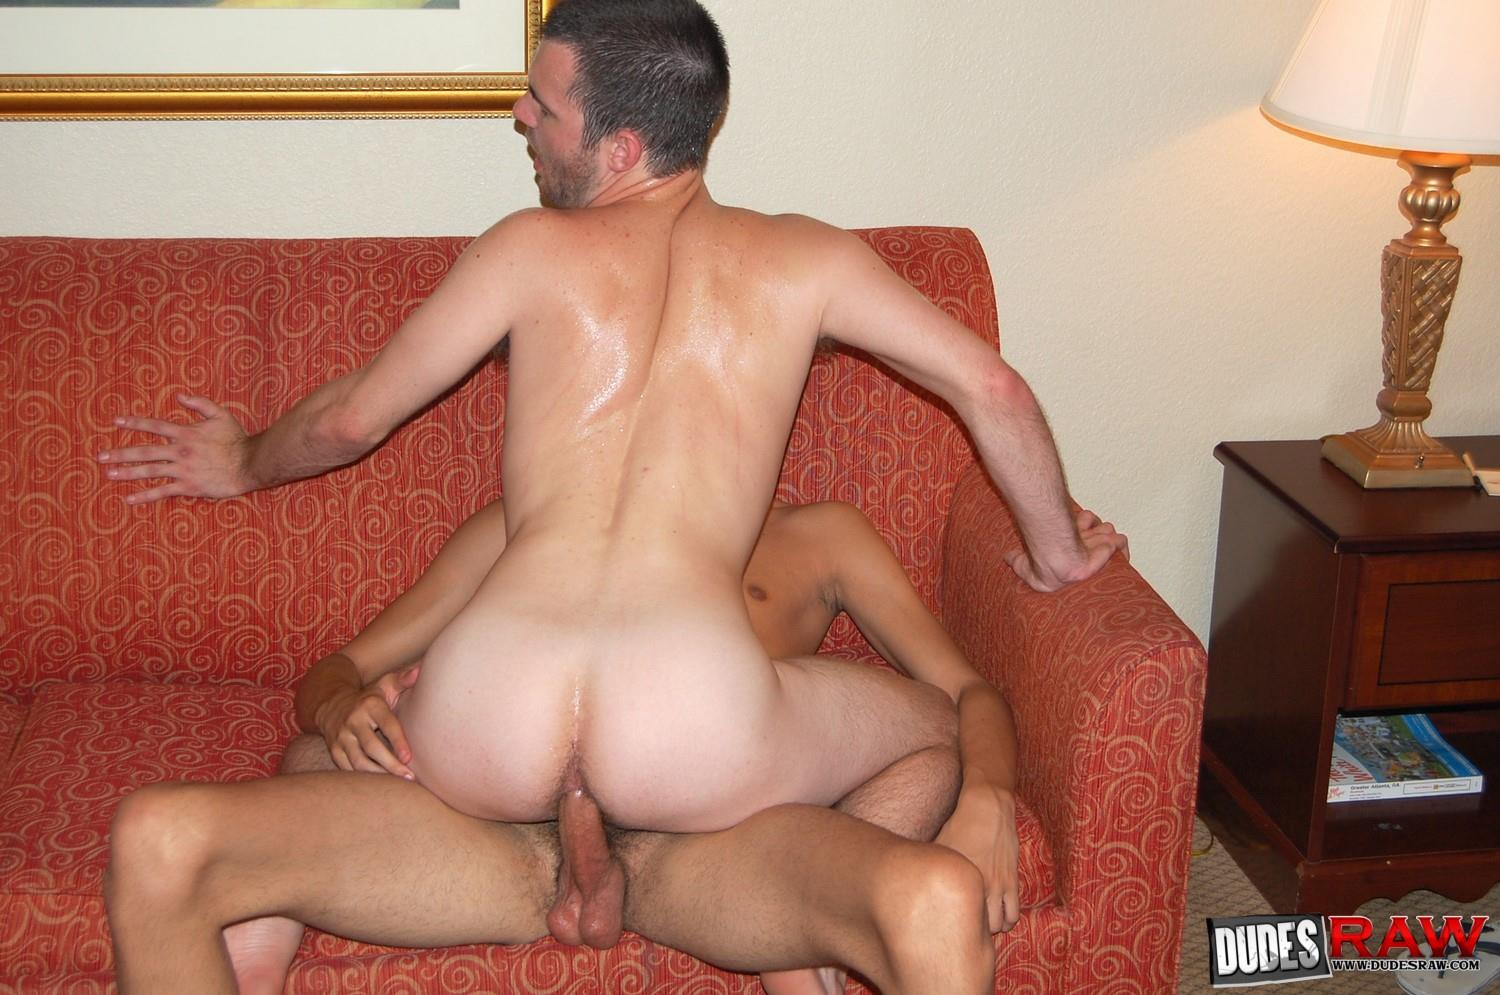 Dudes-Raw-Sean-White-and-Caleb-Bridge-and-Kent-Riley-big-cock-bareback-hotel-sex-07 Sean White Tops Two Guys Bareback In A Seedy Hotel Room